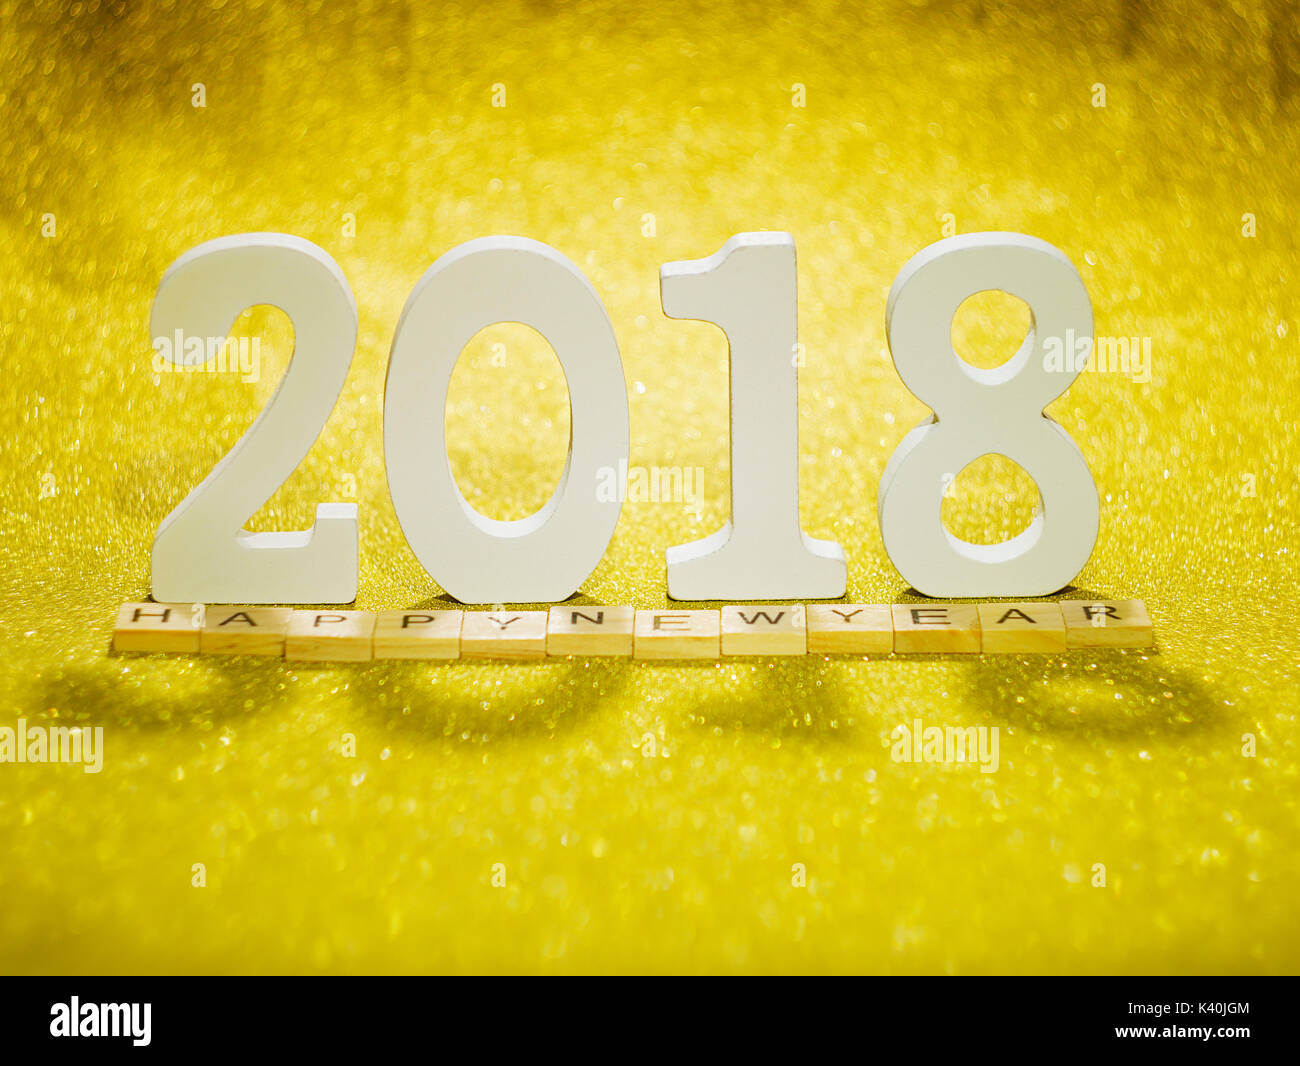 2018 wood letters on gold glitter table for 2018 new year background